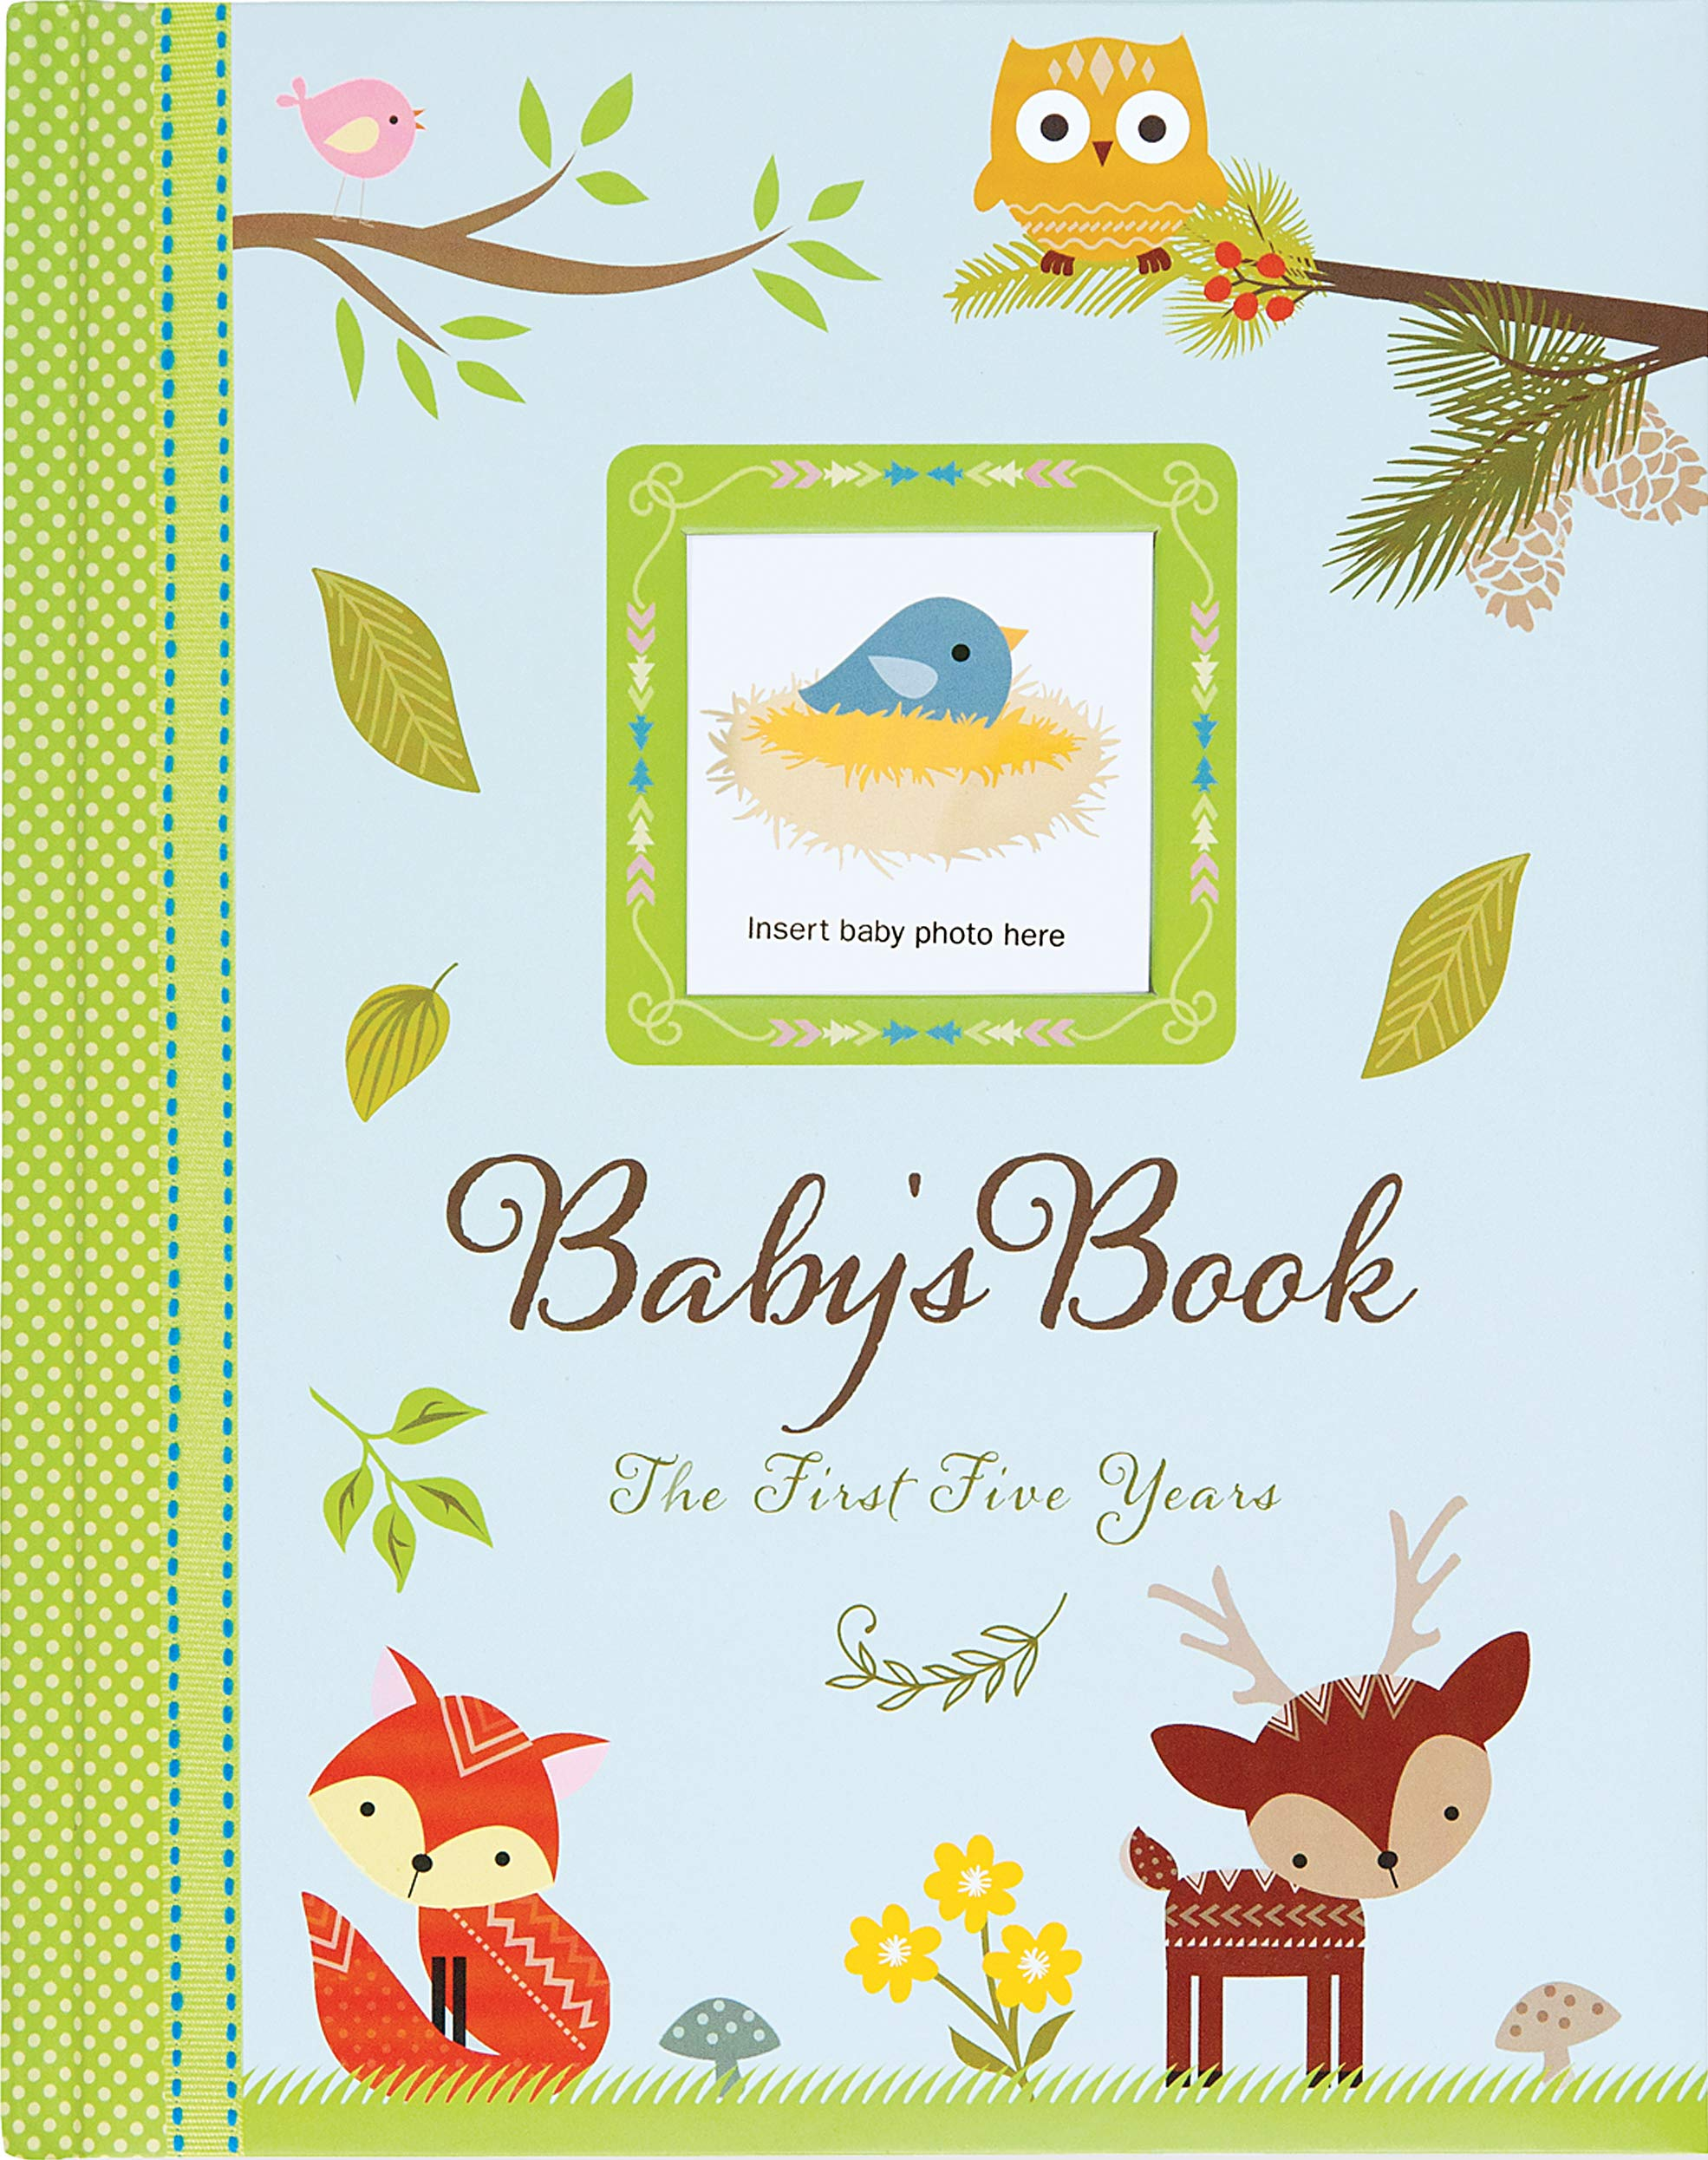 Baby's Book: The First Five Years (Woodland Friends): Peter Pauper Press:  9781441319760: Amazon.com: Books